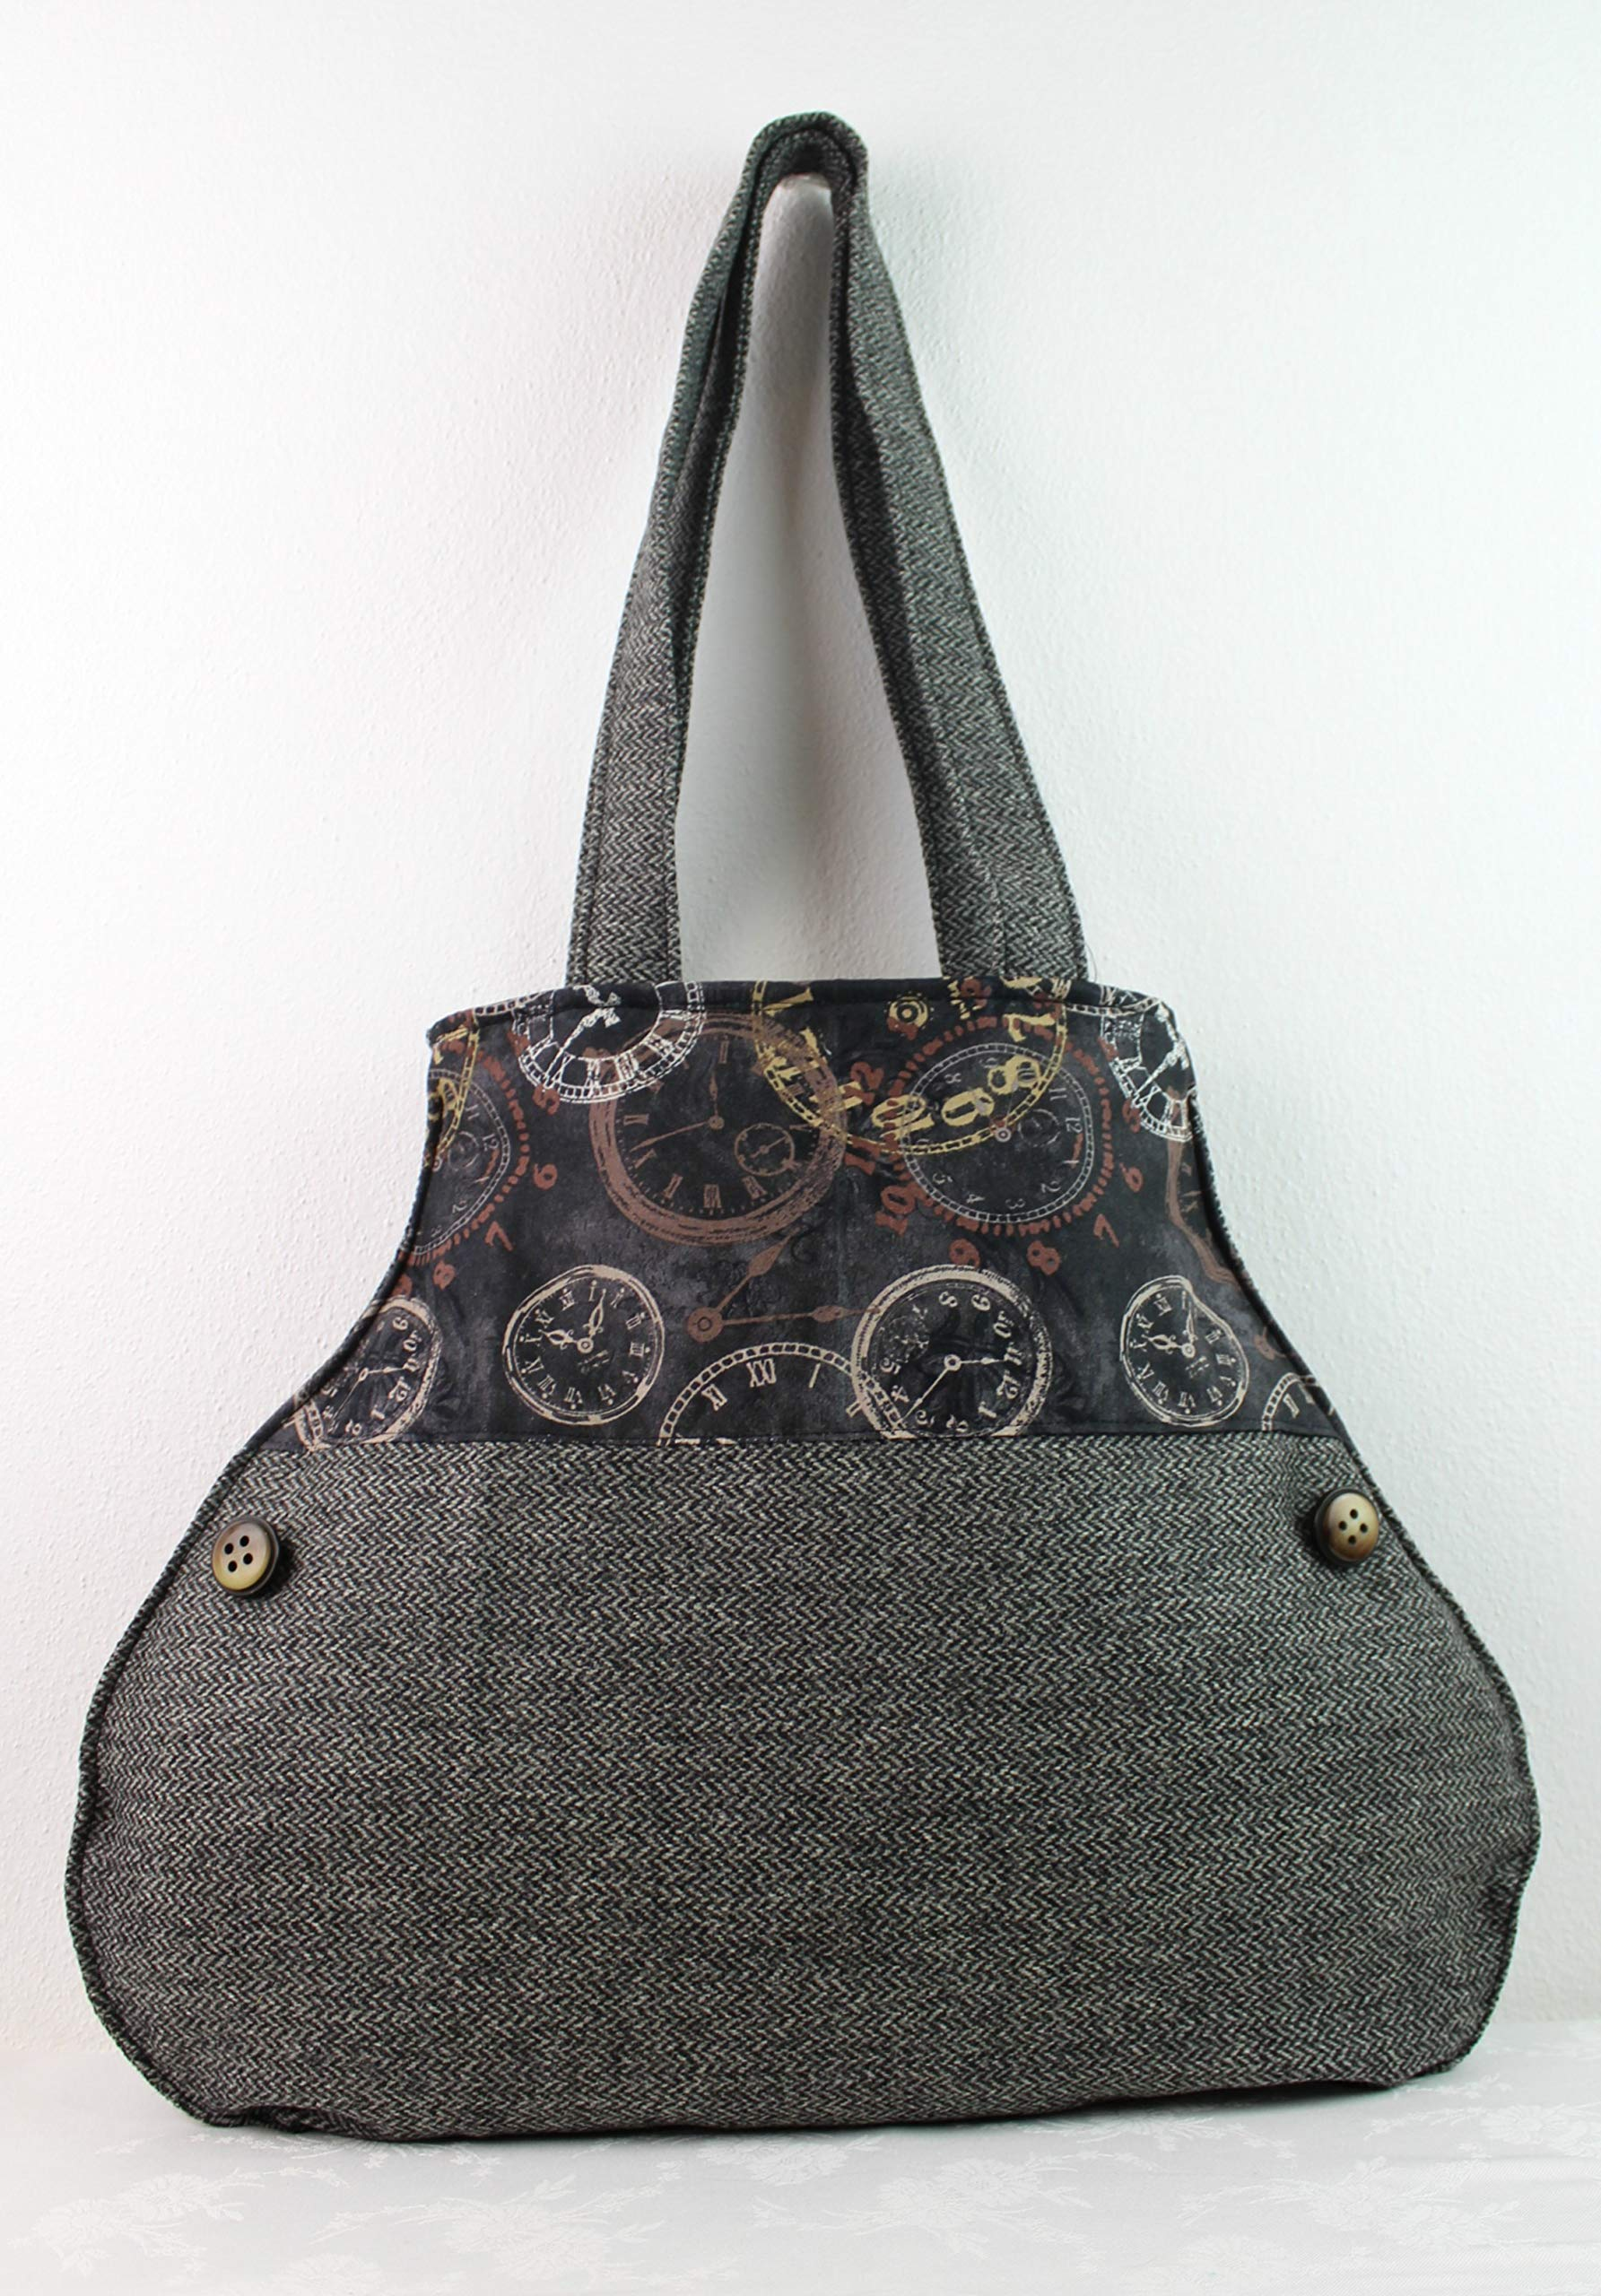 Shoulder bag - WOOL and BATIK with Clocks - handmade-bags